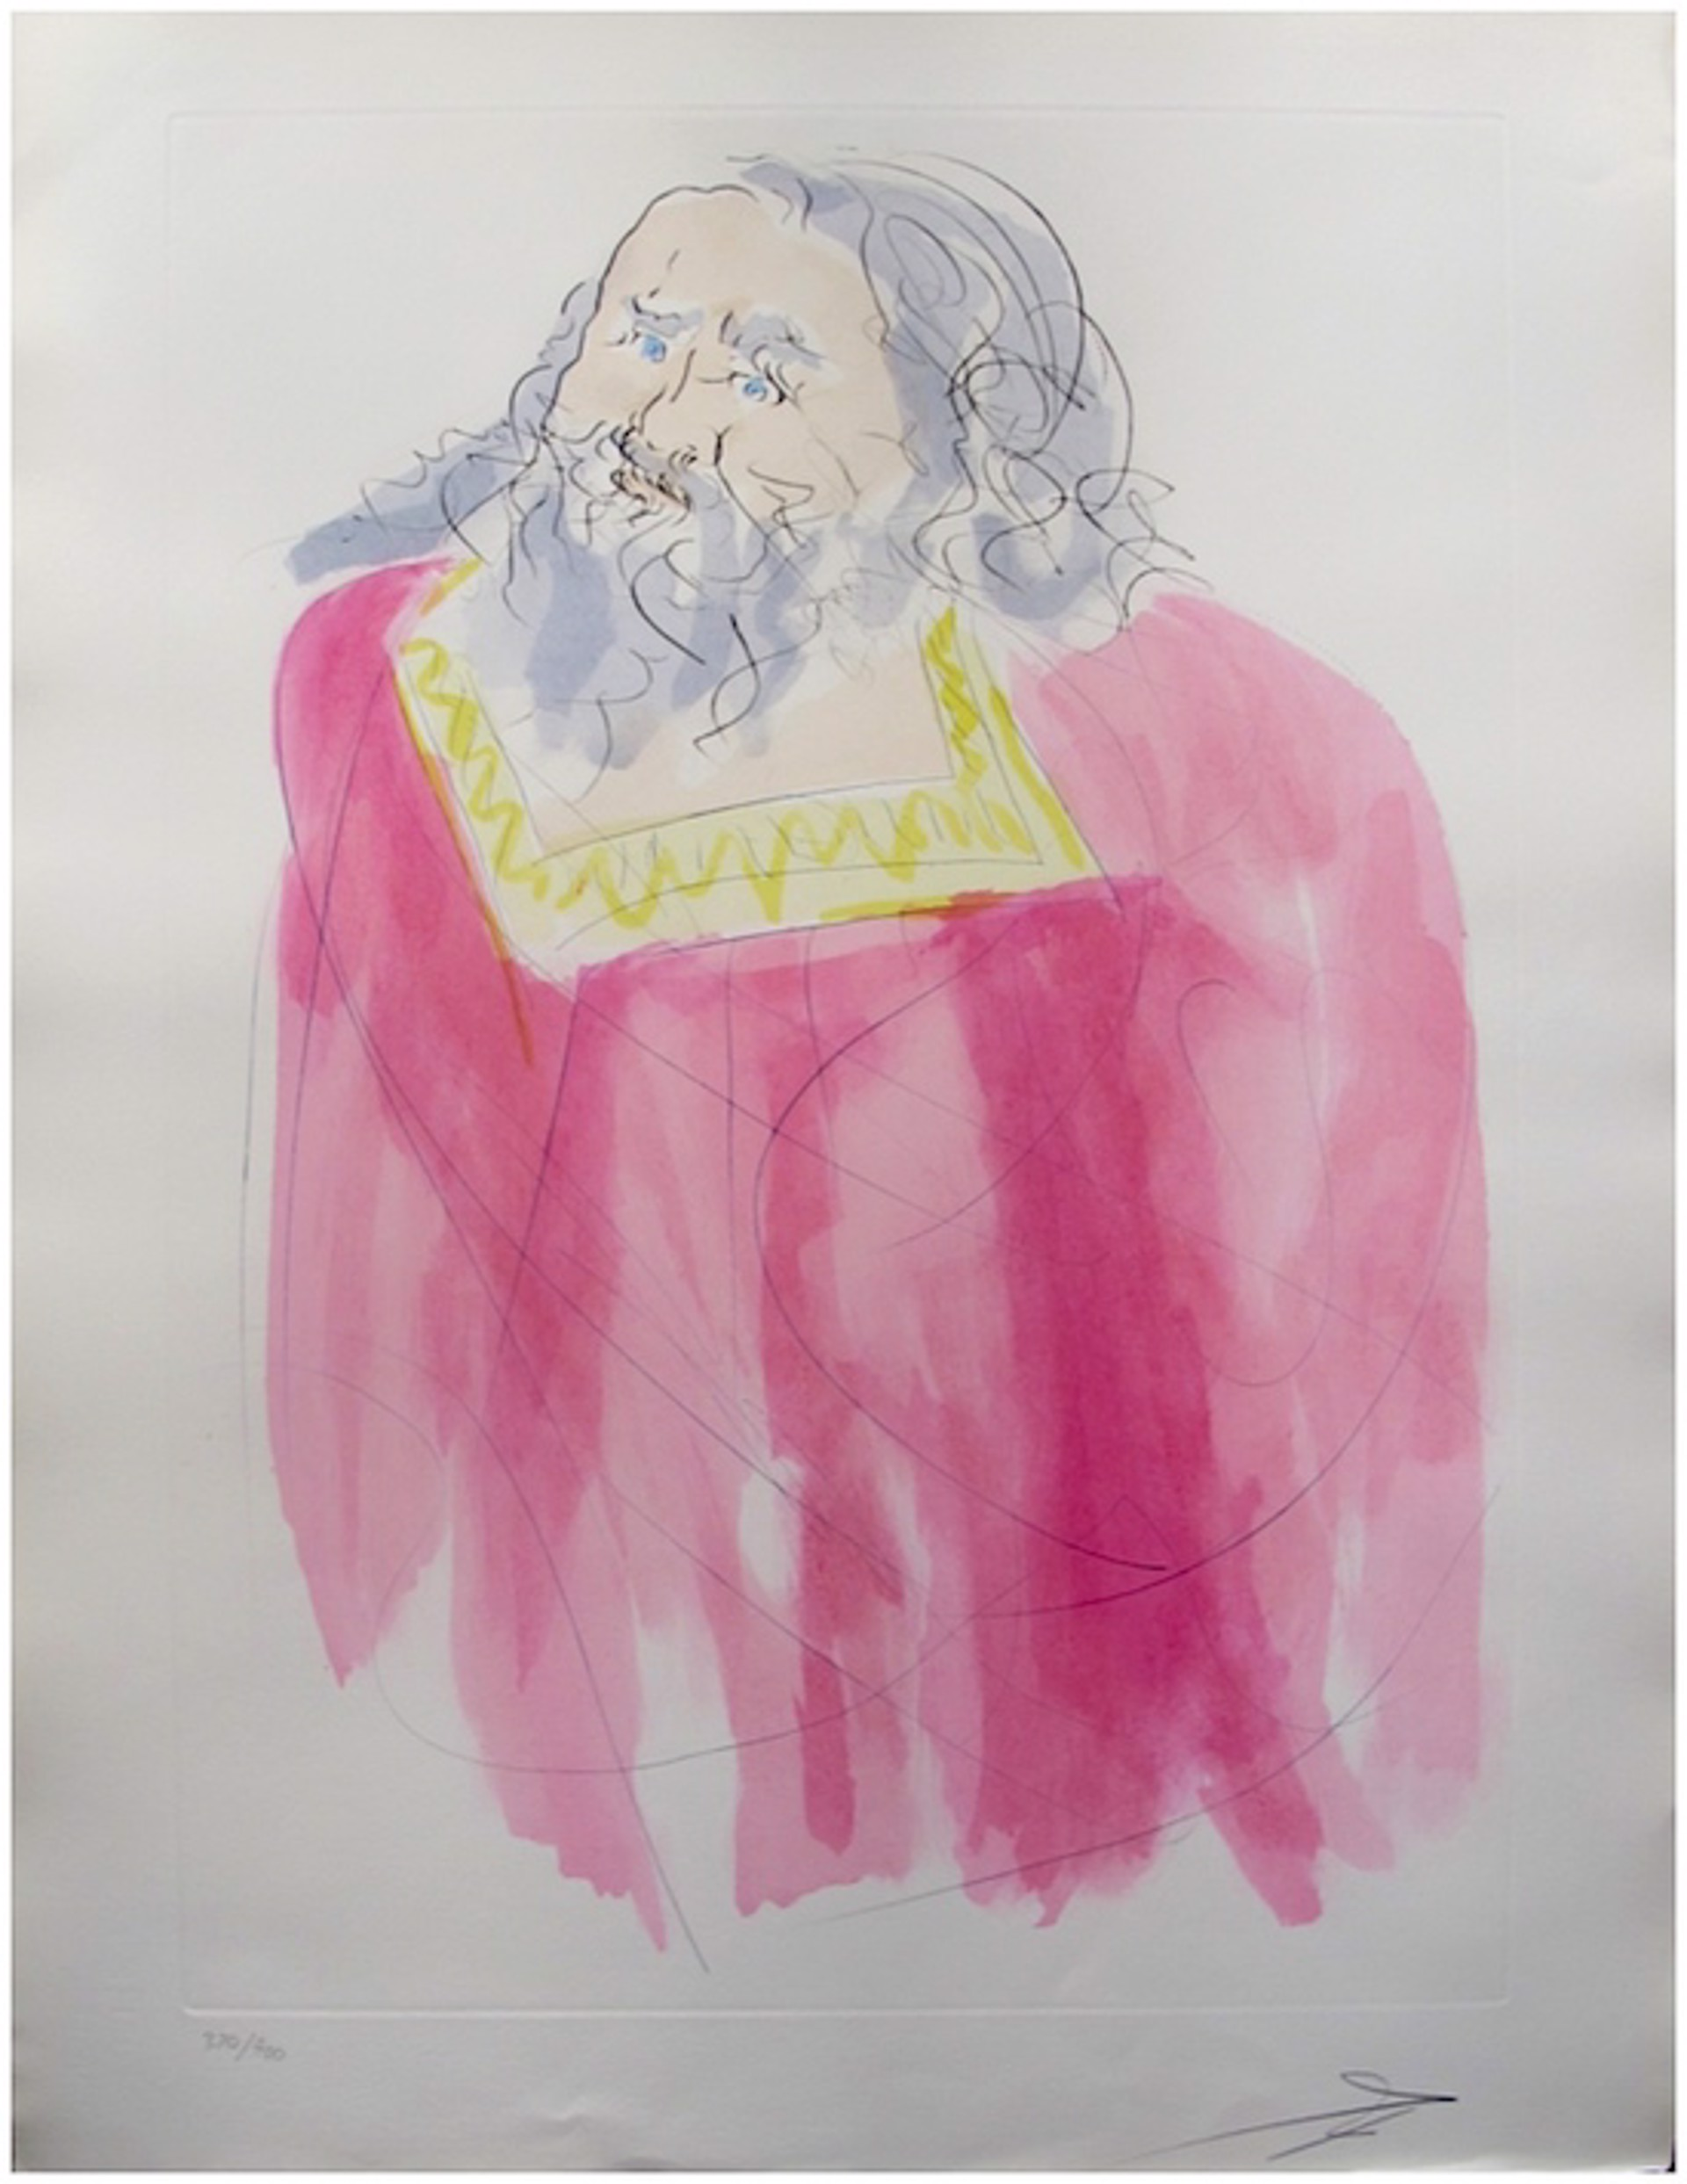 Jeremiah (from Our Historical Heritage, suite of 11) by Salvador Dali